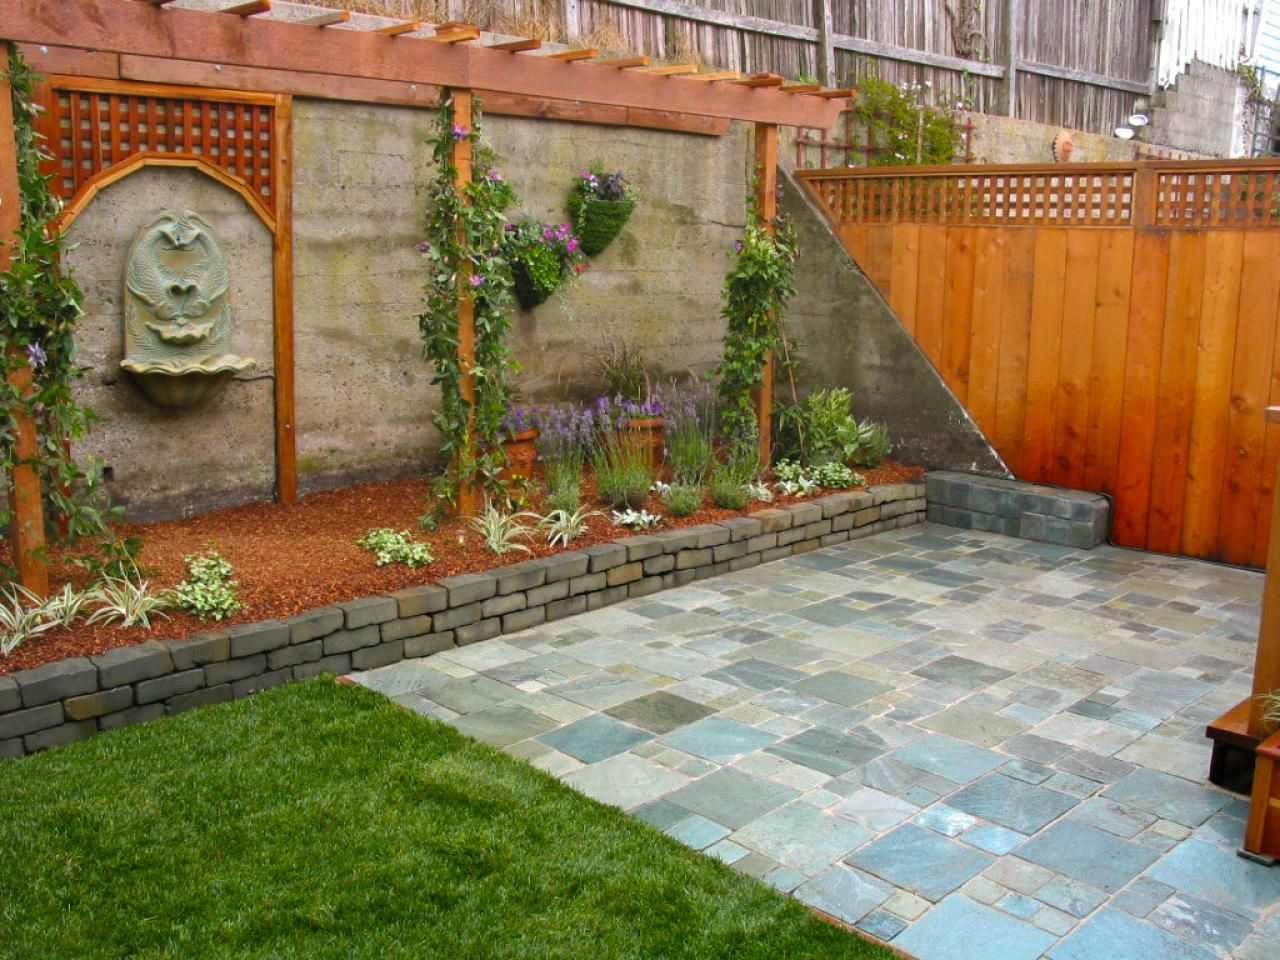 Amazing Outdoor Walls and Fences | fencing | Pinterest | Outdoor ...